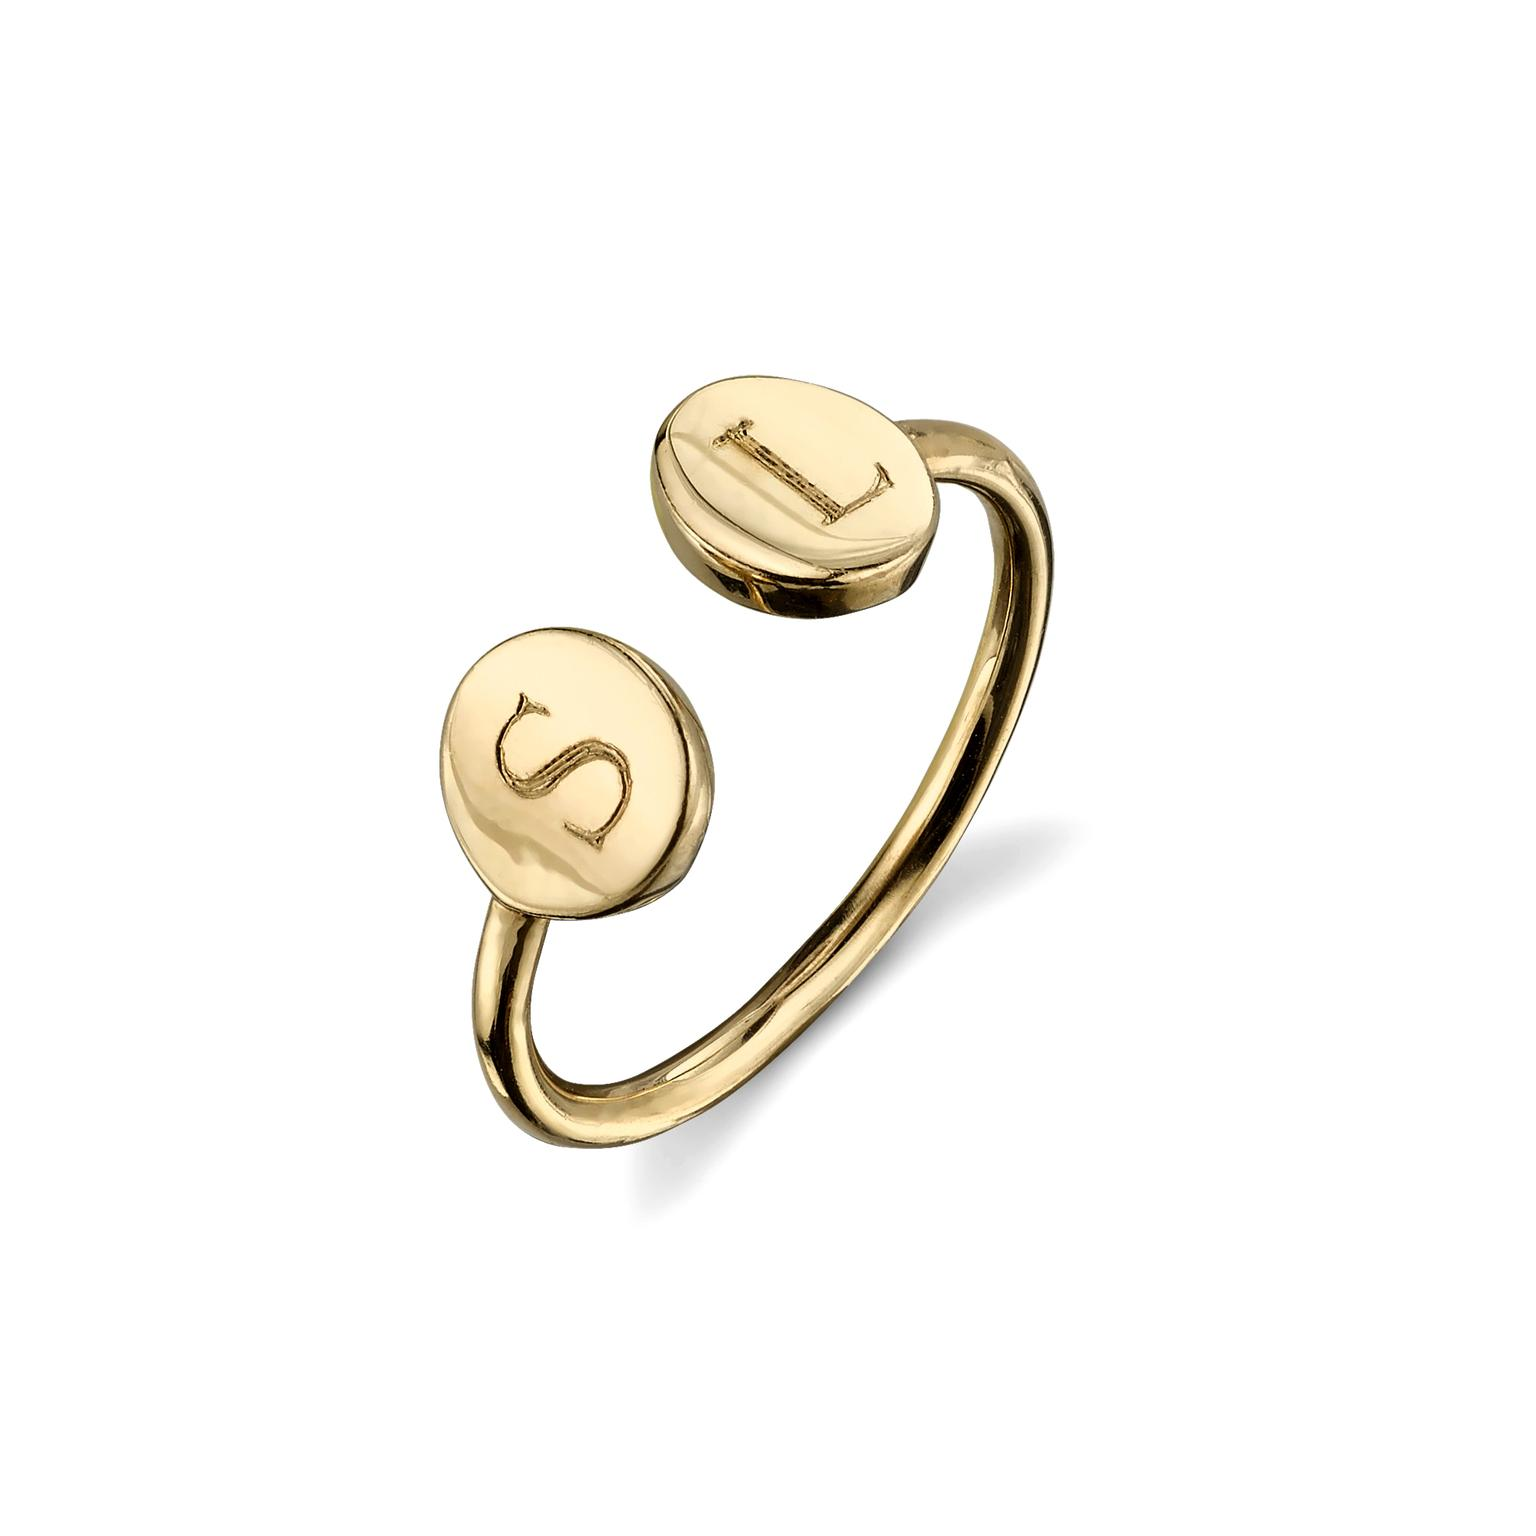 Sarah Chloe Rocha open ring in yellow gold